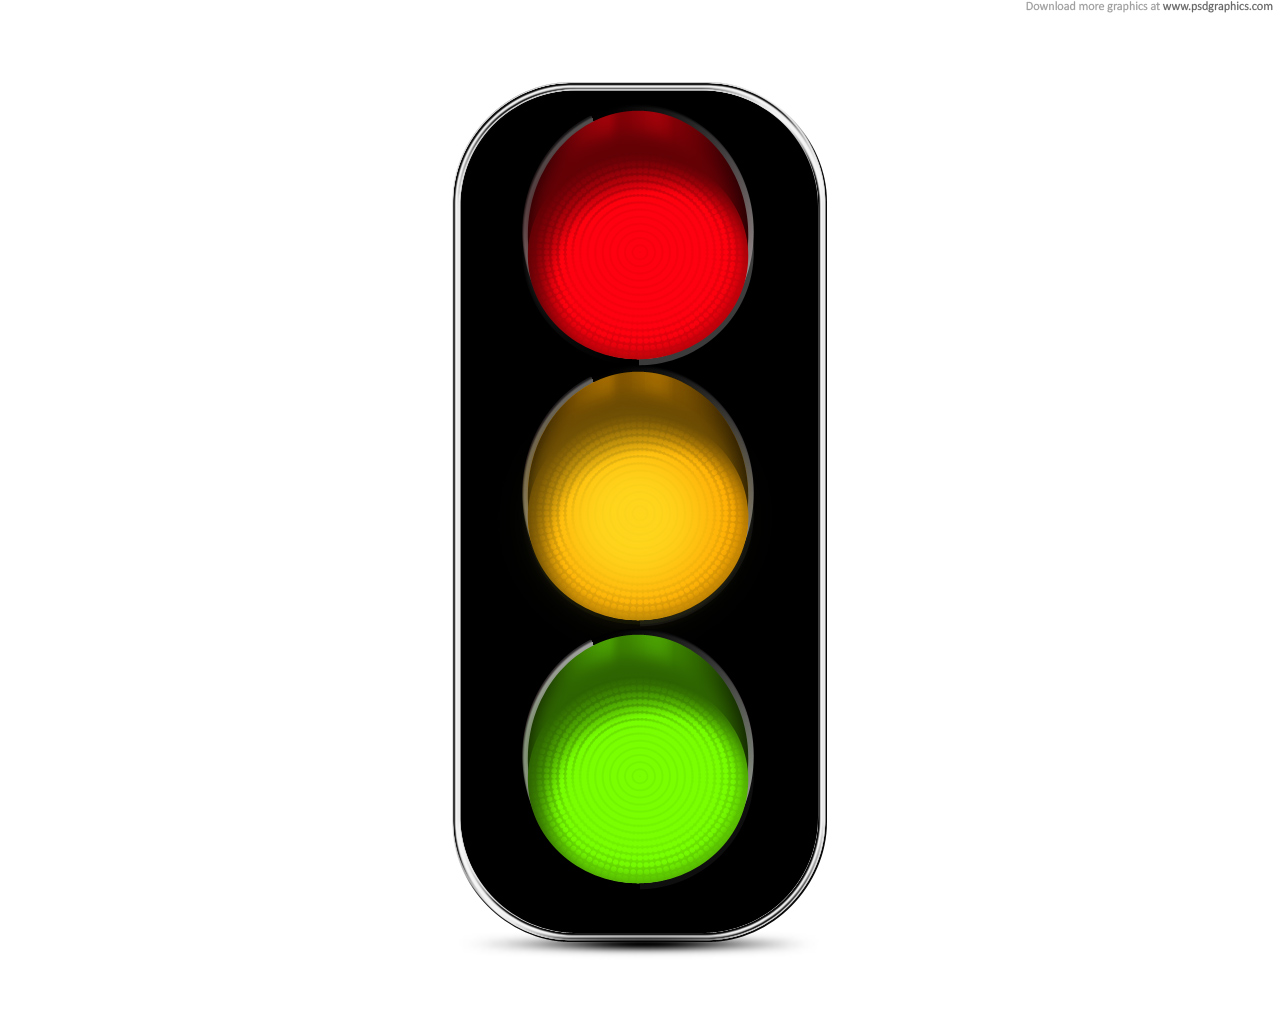 Traffic Lights Icon  Psd    Psdgraphics